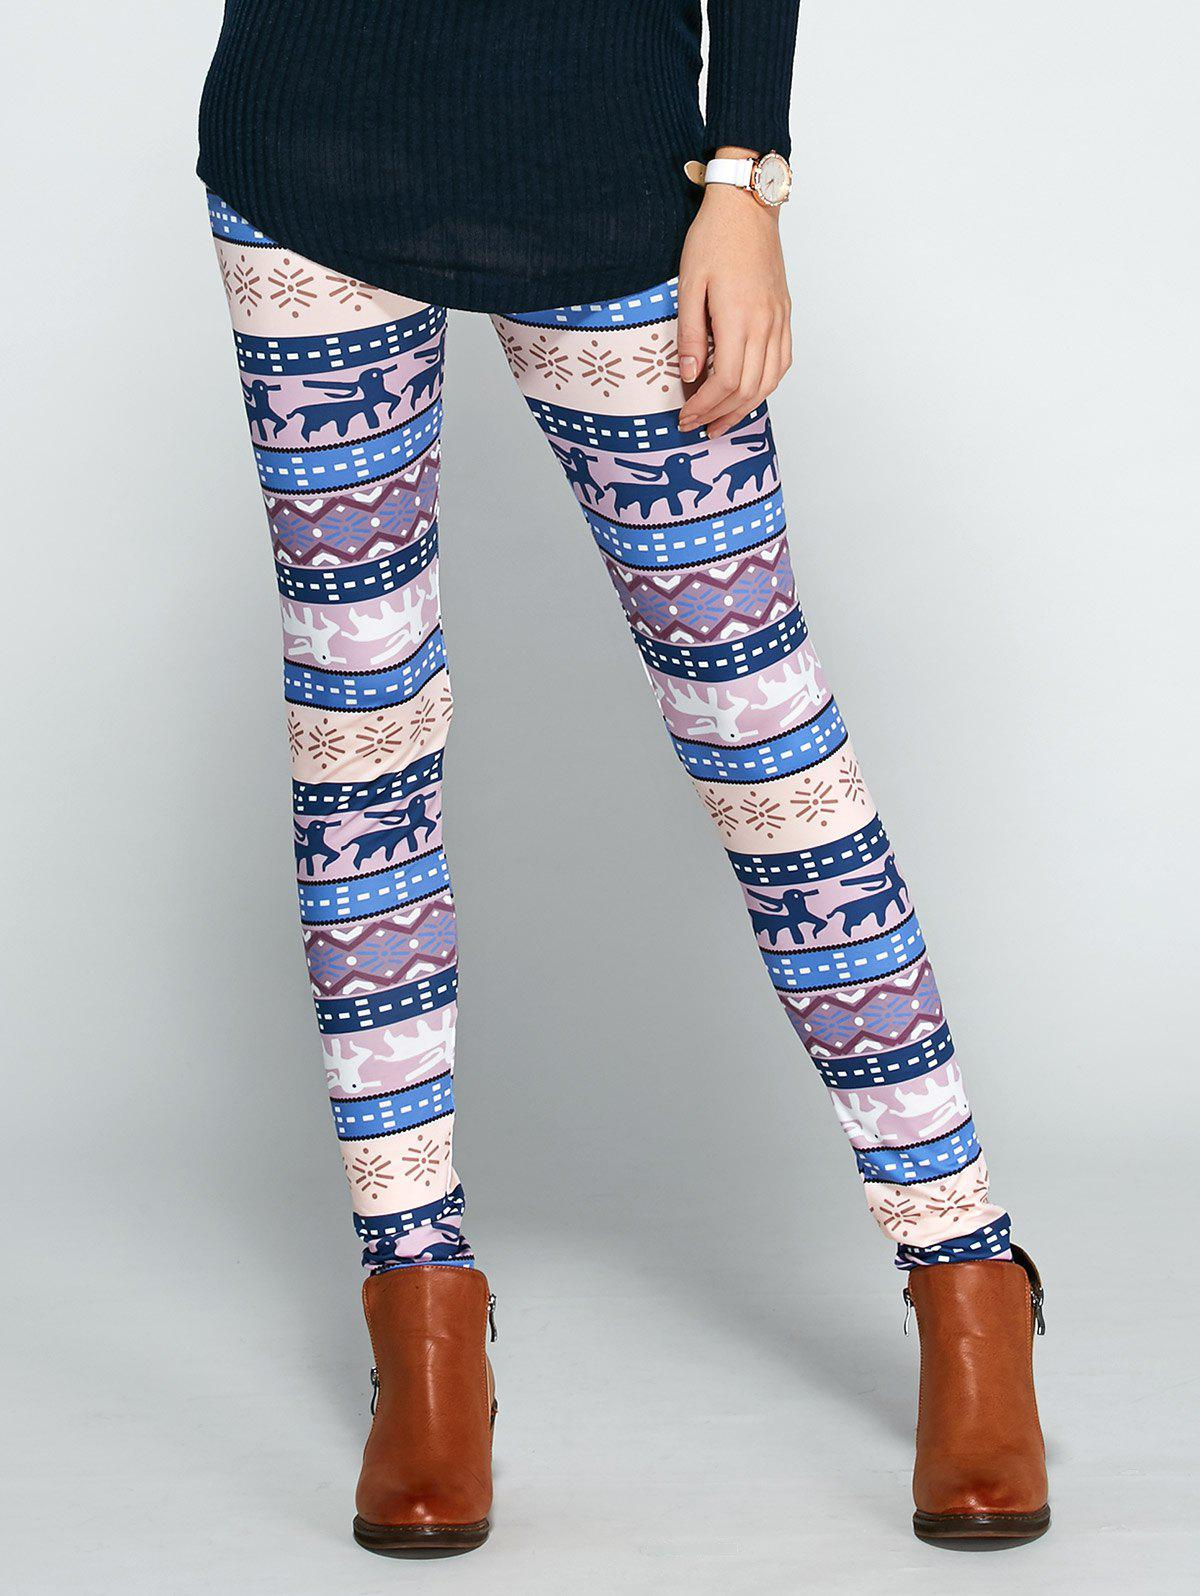 Noël Ornement Printed Leggings